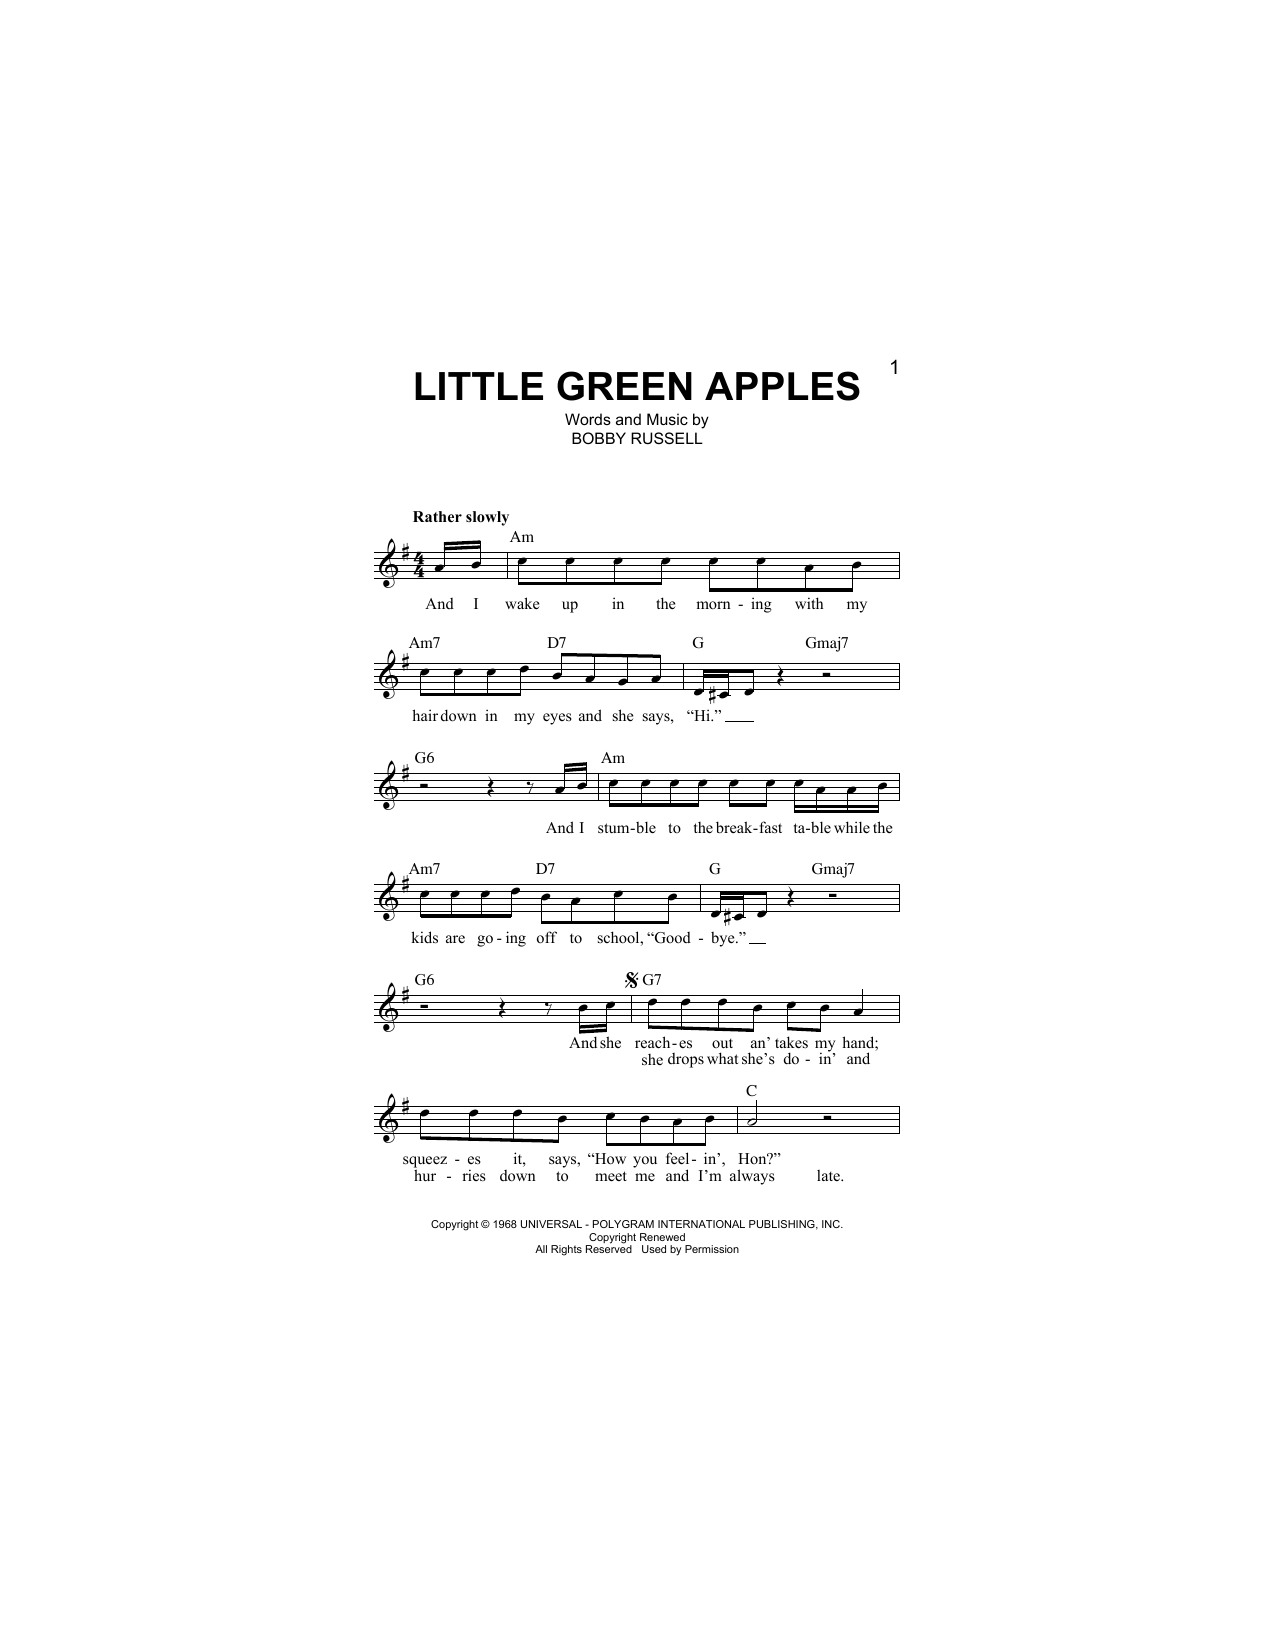 Little Green Apples Partituras Digitales